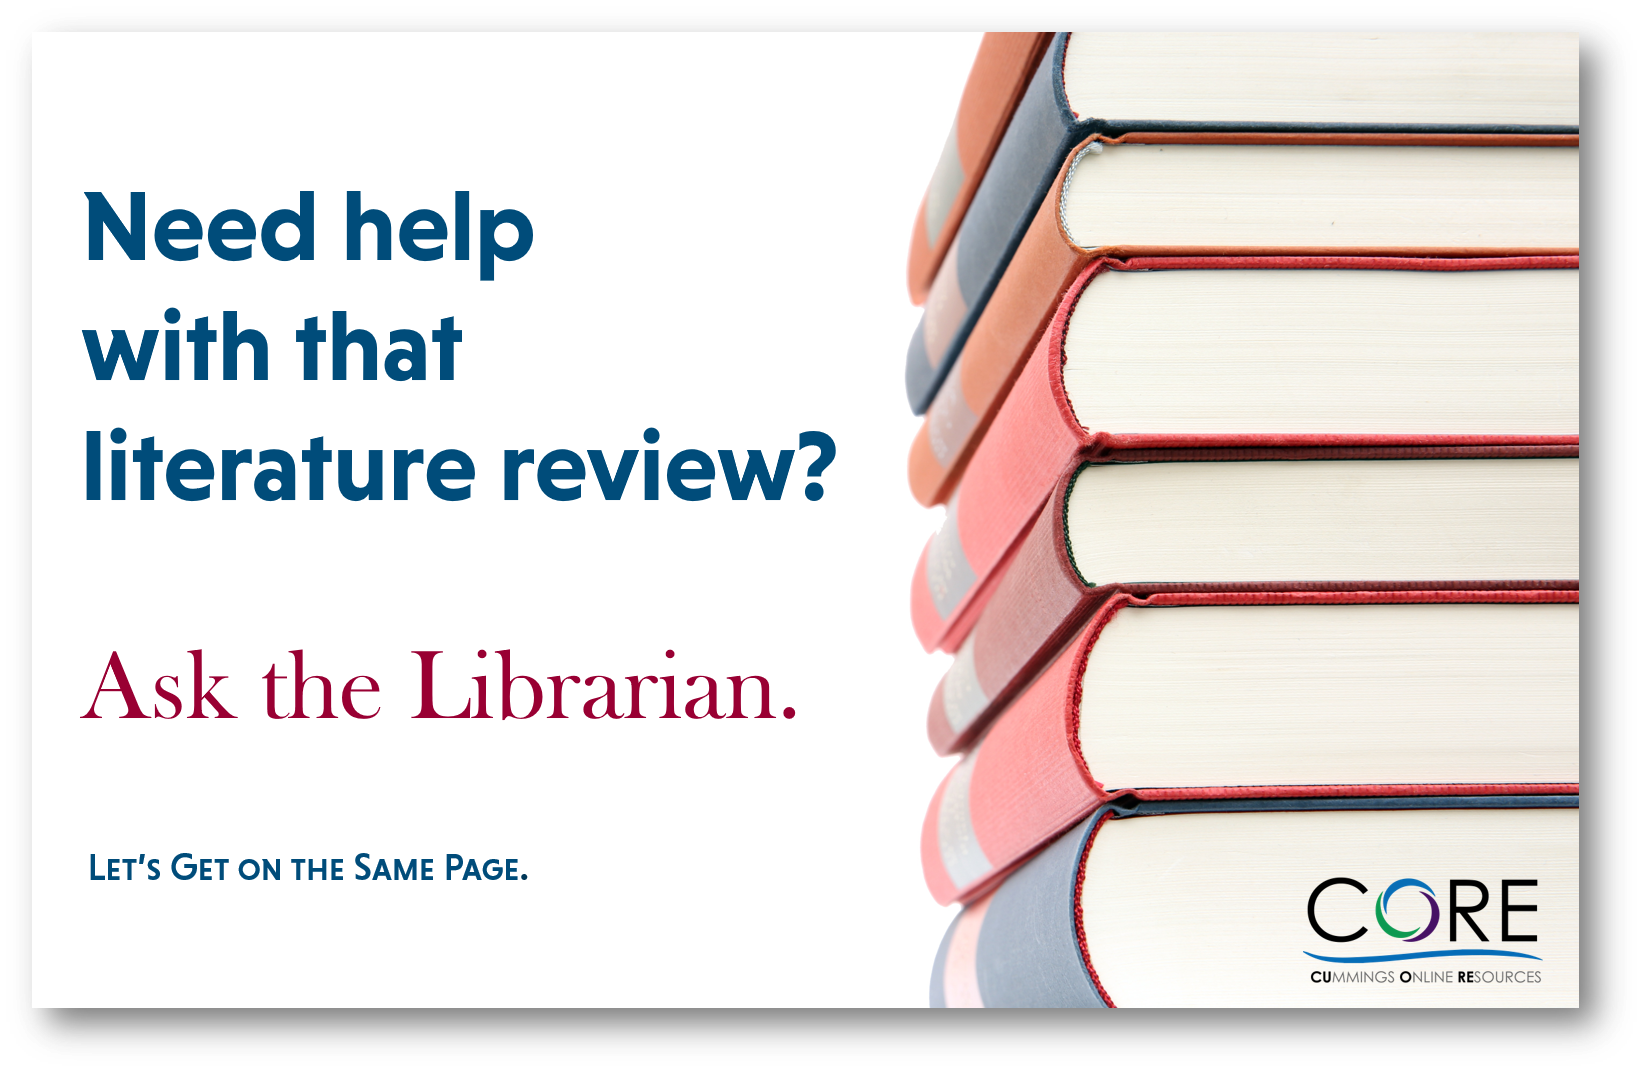 Need help with that literature review?  Ask the Librarian.